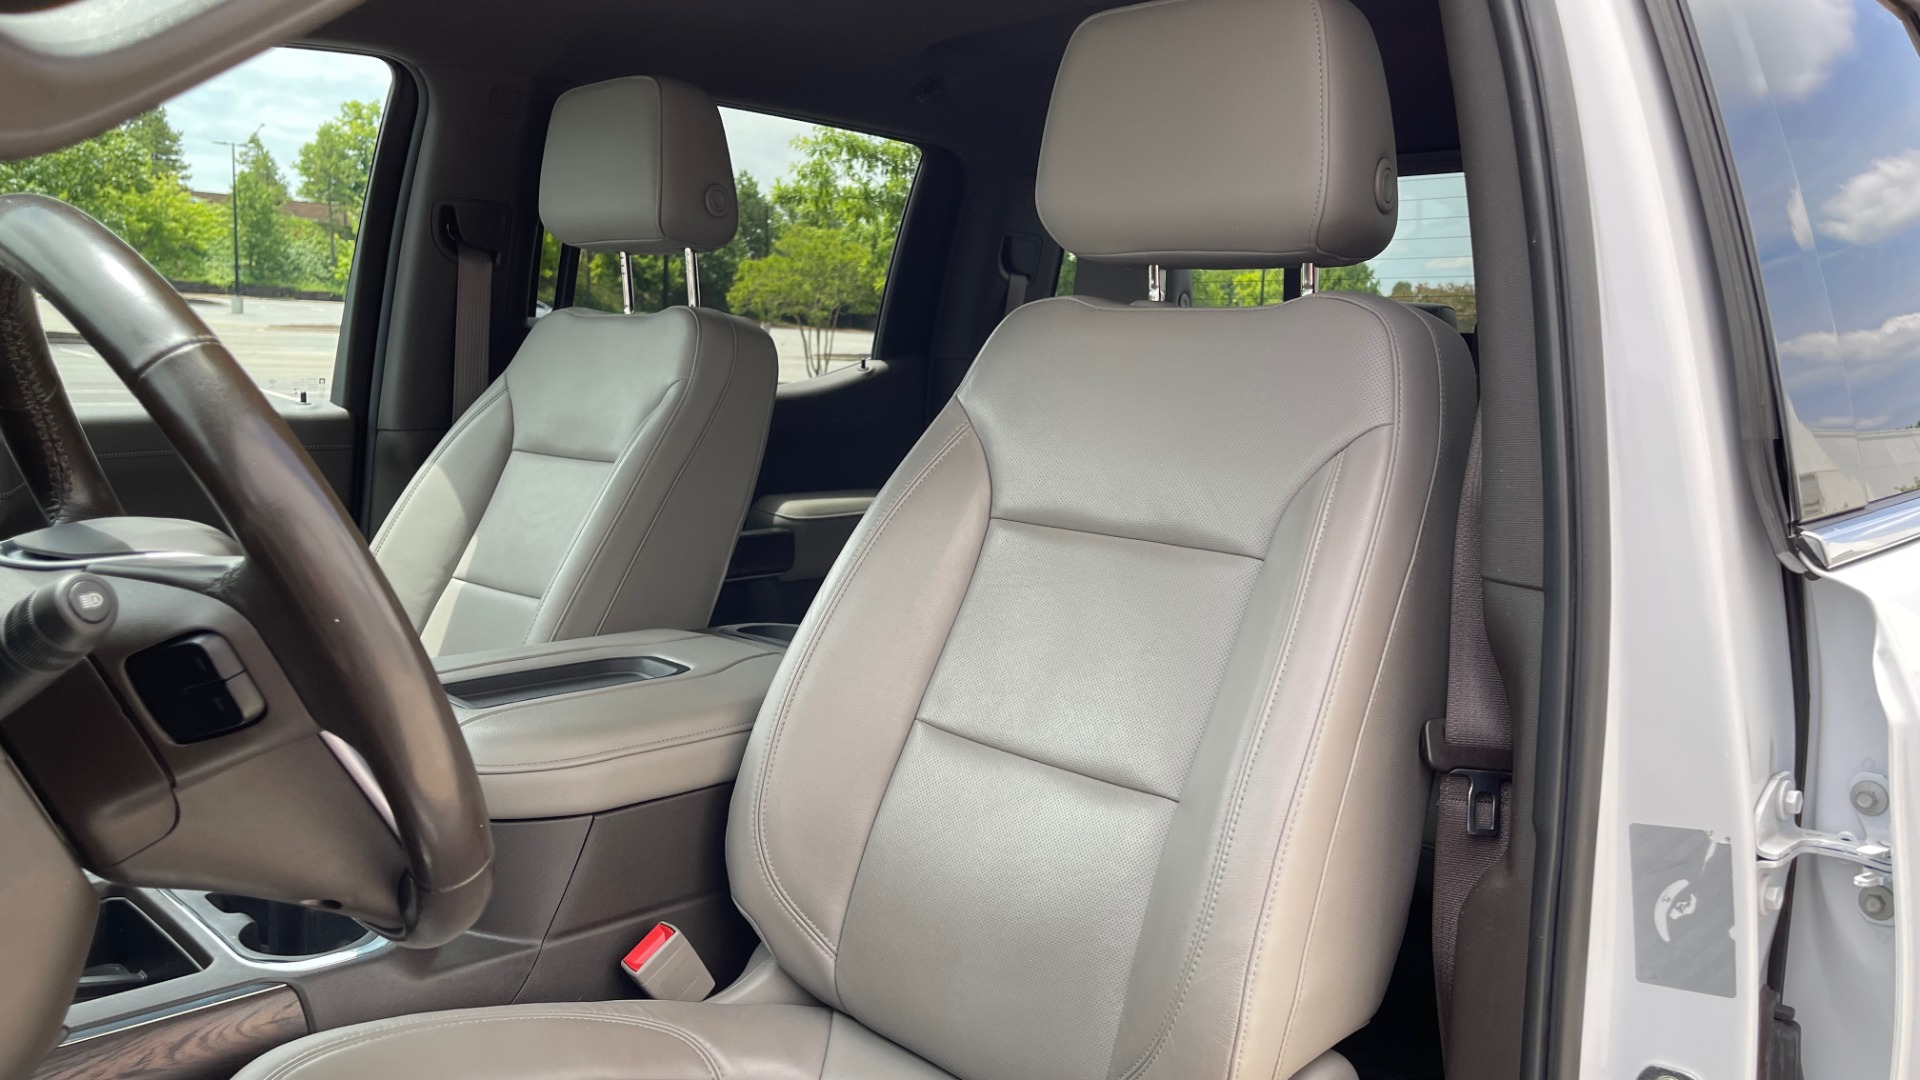 Used 2019 GMC SIERRA 1500 SLT 4X4 CREWCAB / 5.3L V8 / 8-SPD AUTO / NAV / BOSE / REARVIEW for sale $49,999 at Formula Imports in Charlotte NC 28227 38